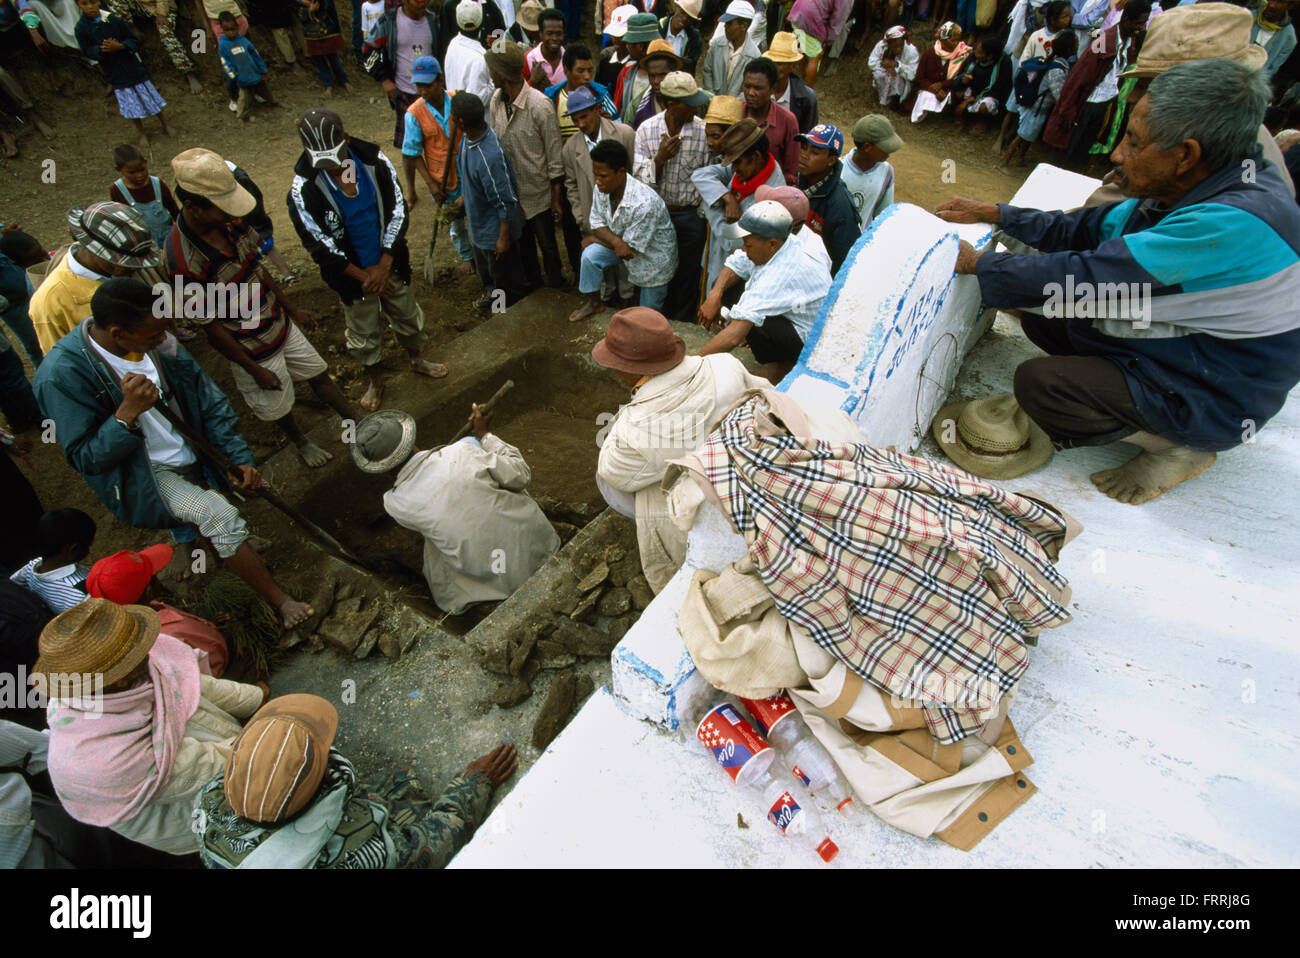 A family grave is opened at a reburial ceremony in Belaveno, Bezanozano Ethnic Area, Madagascar. - Stock Image